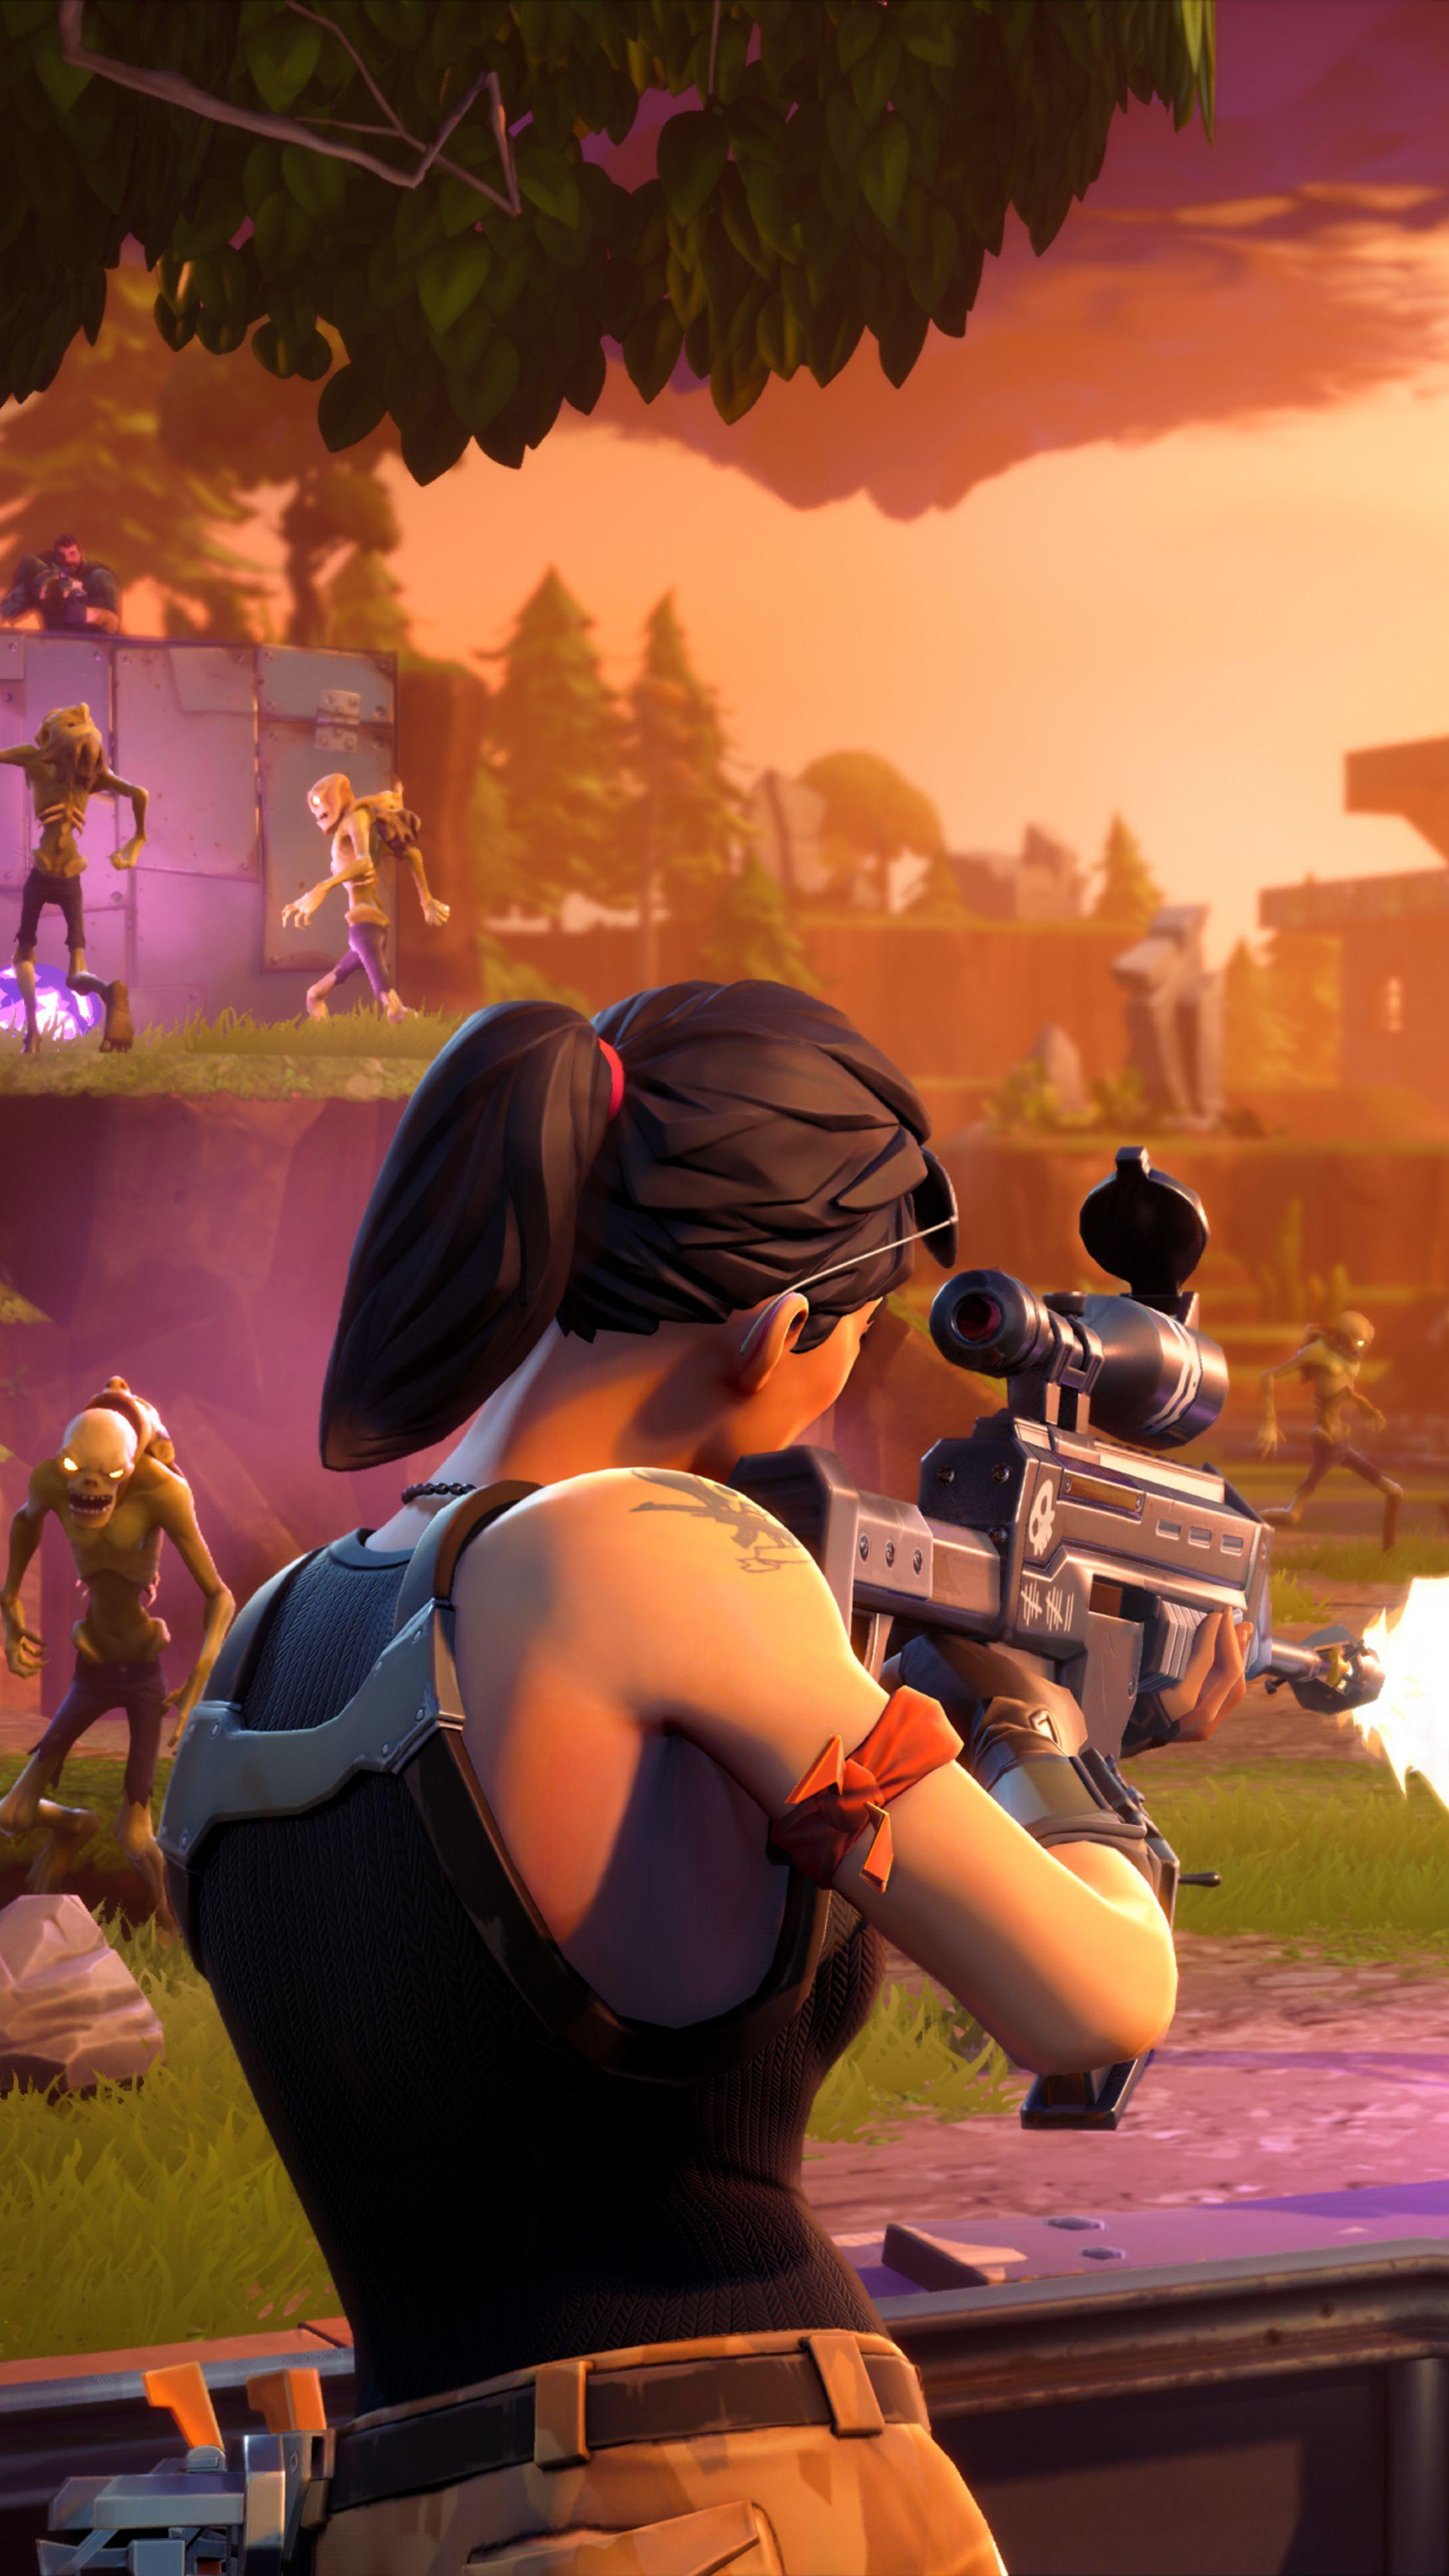 Download Fortnite Ps4 Gameplay 2160x3840 Resolution, HD 8K Wallpapers